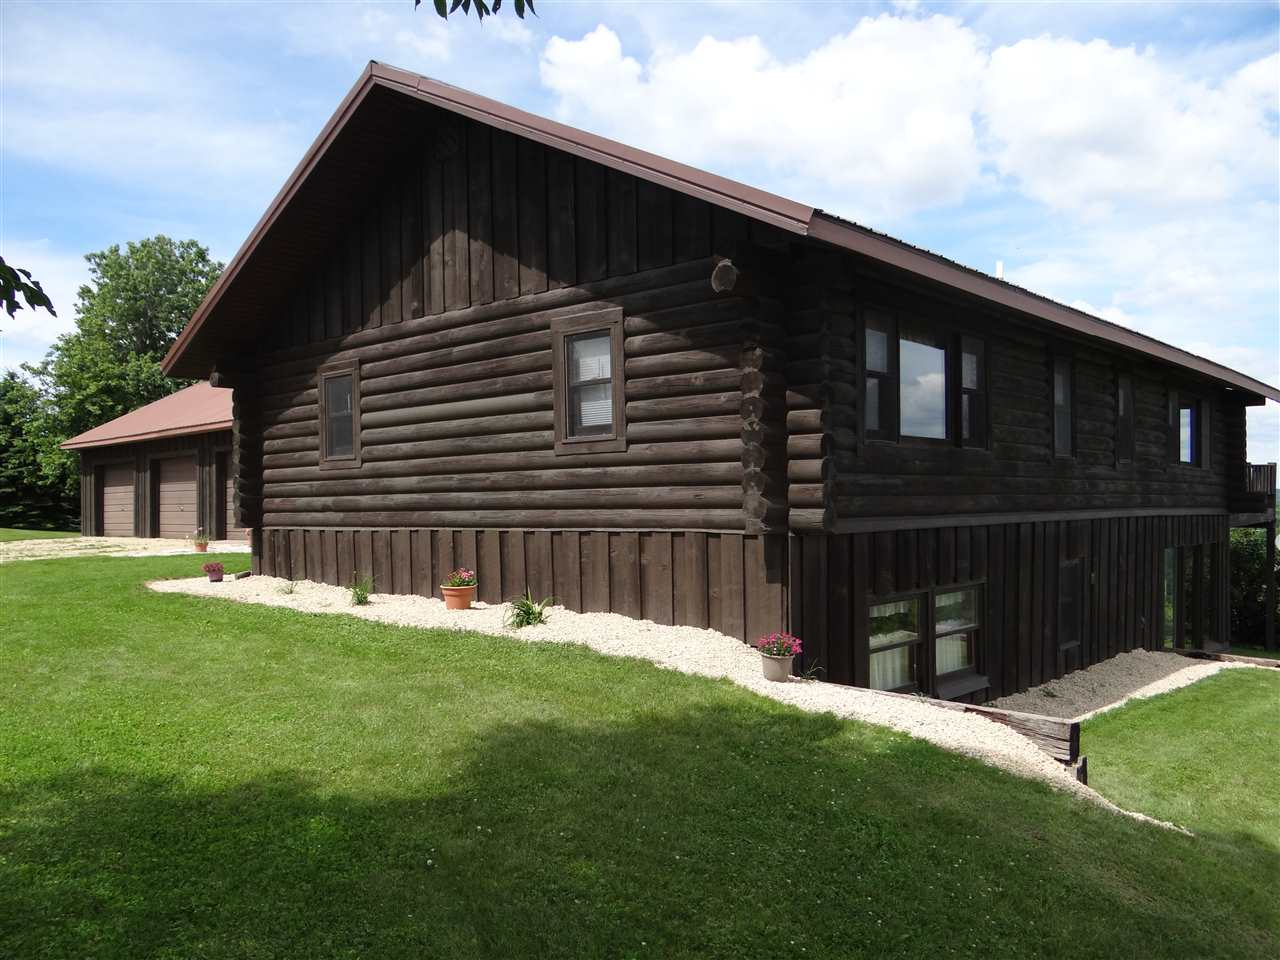 331 FAIRVIEW HEIGHTS LN, Harpers Ferry, IA 52146